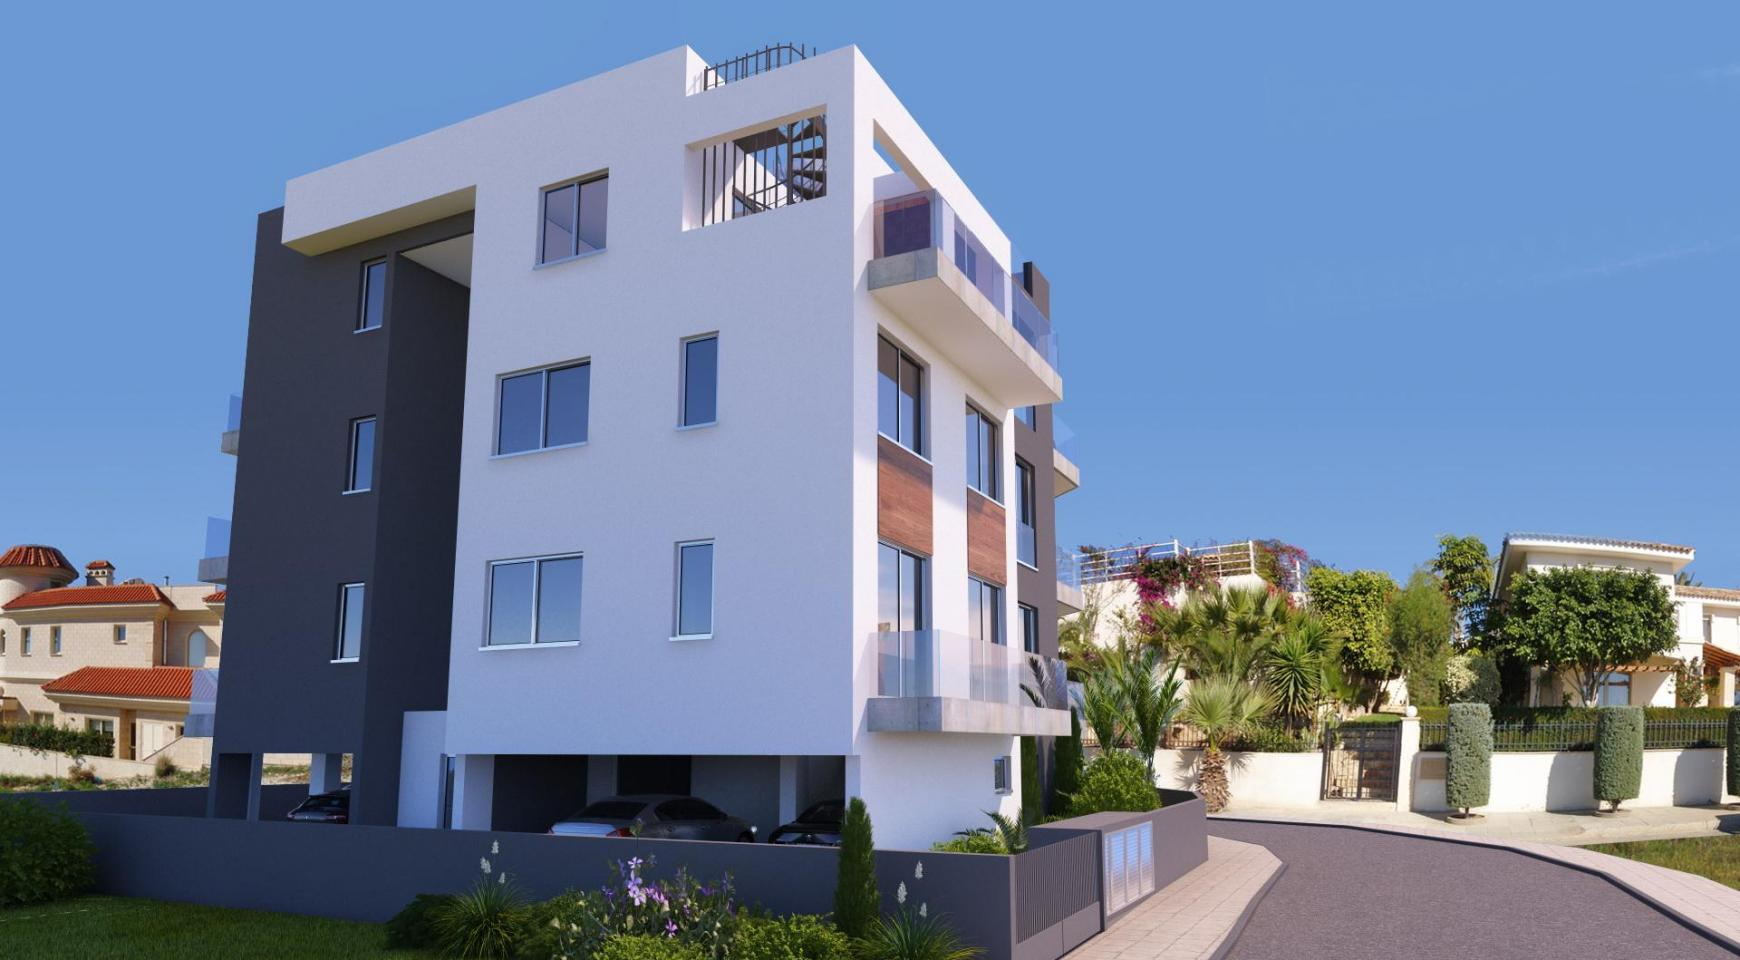 3 Bedroom Apartment in a Contemporary Building in Potamos Germasogeia - 4